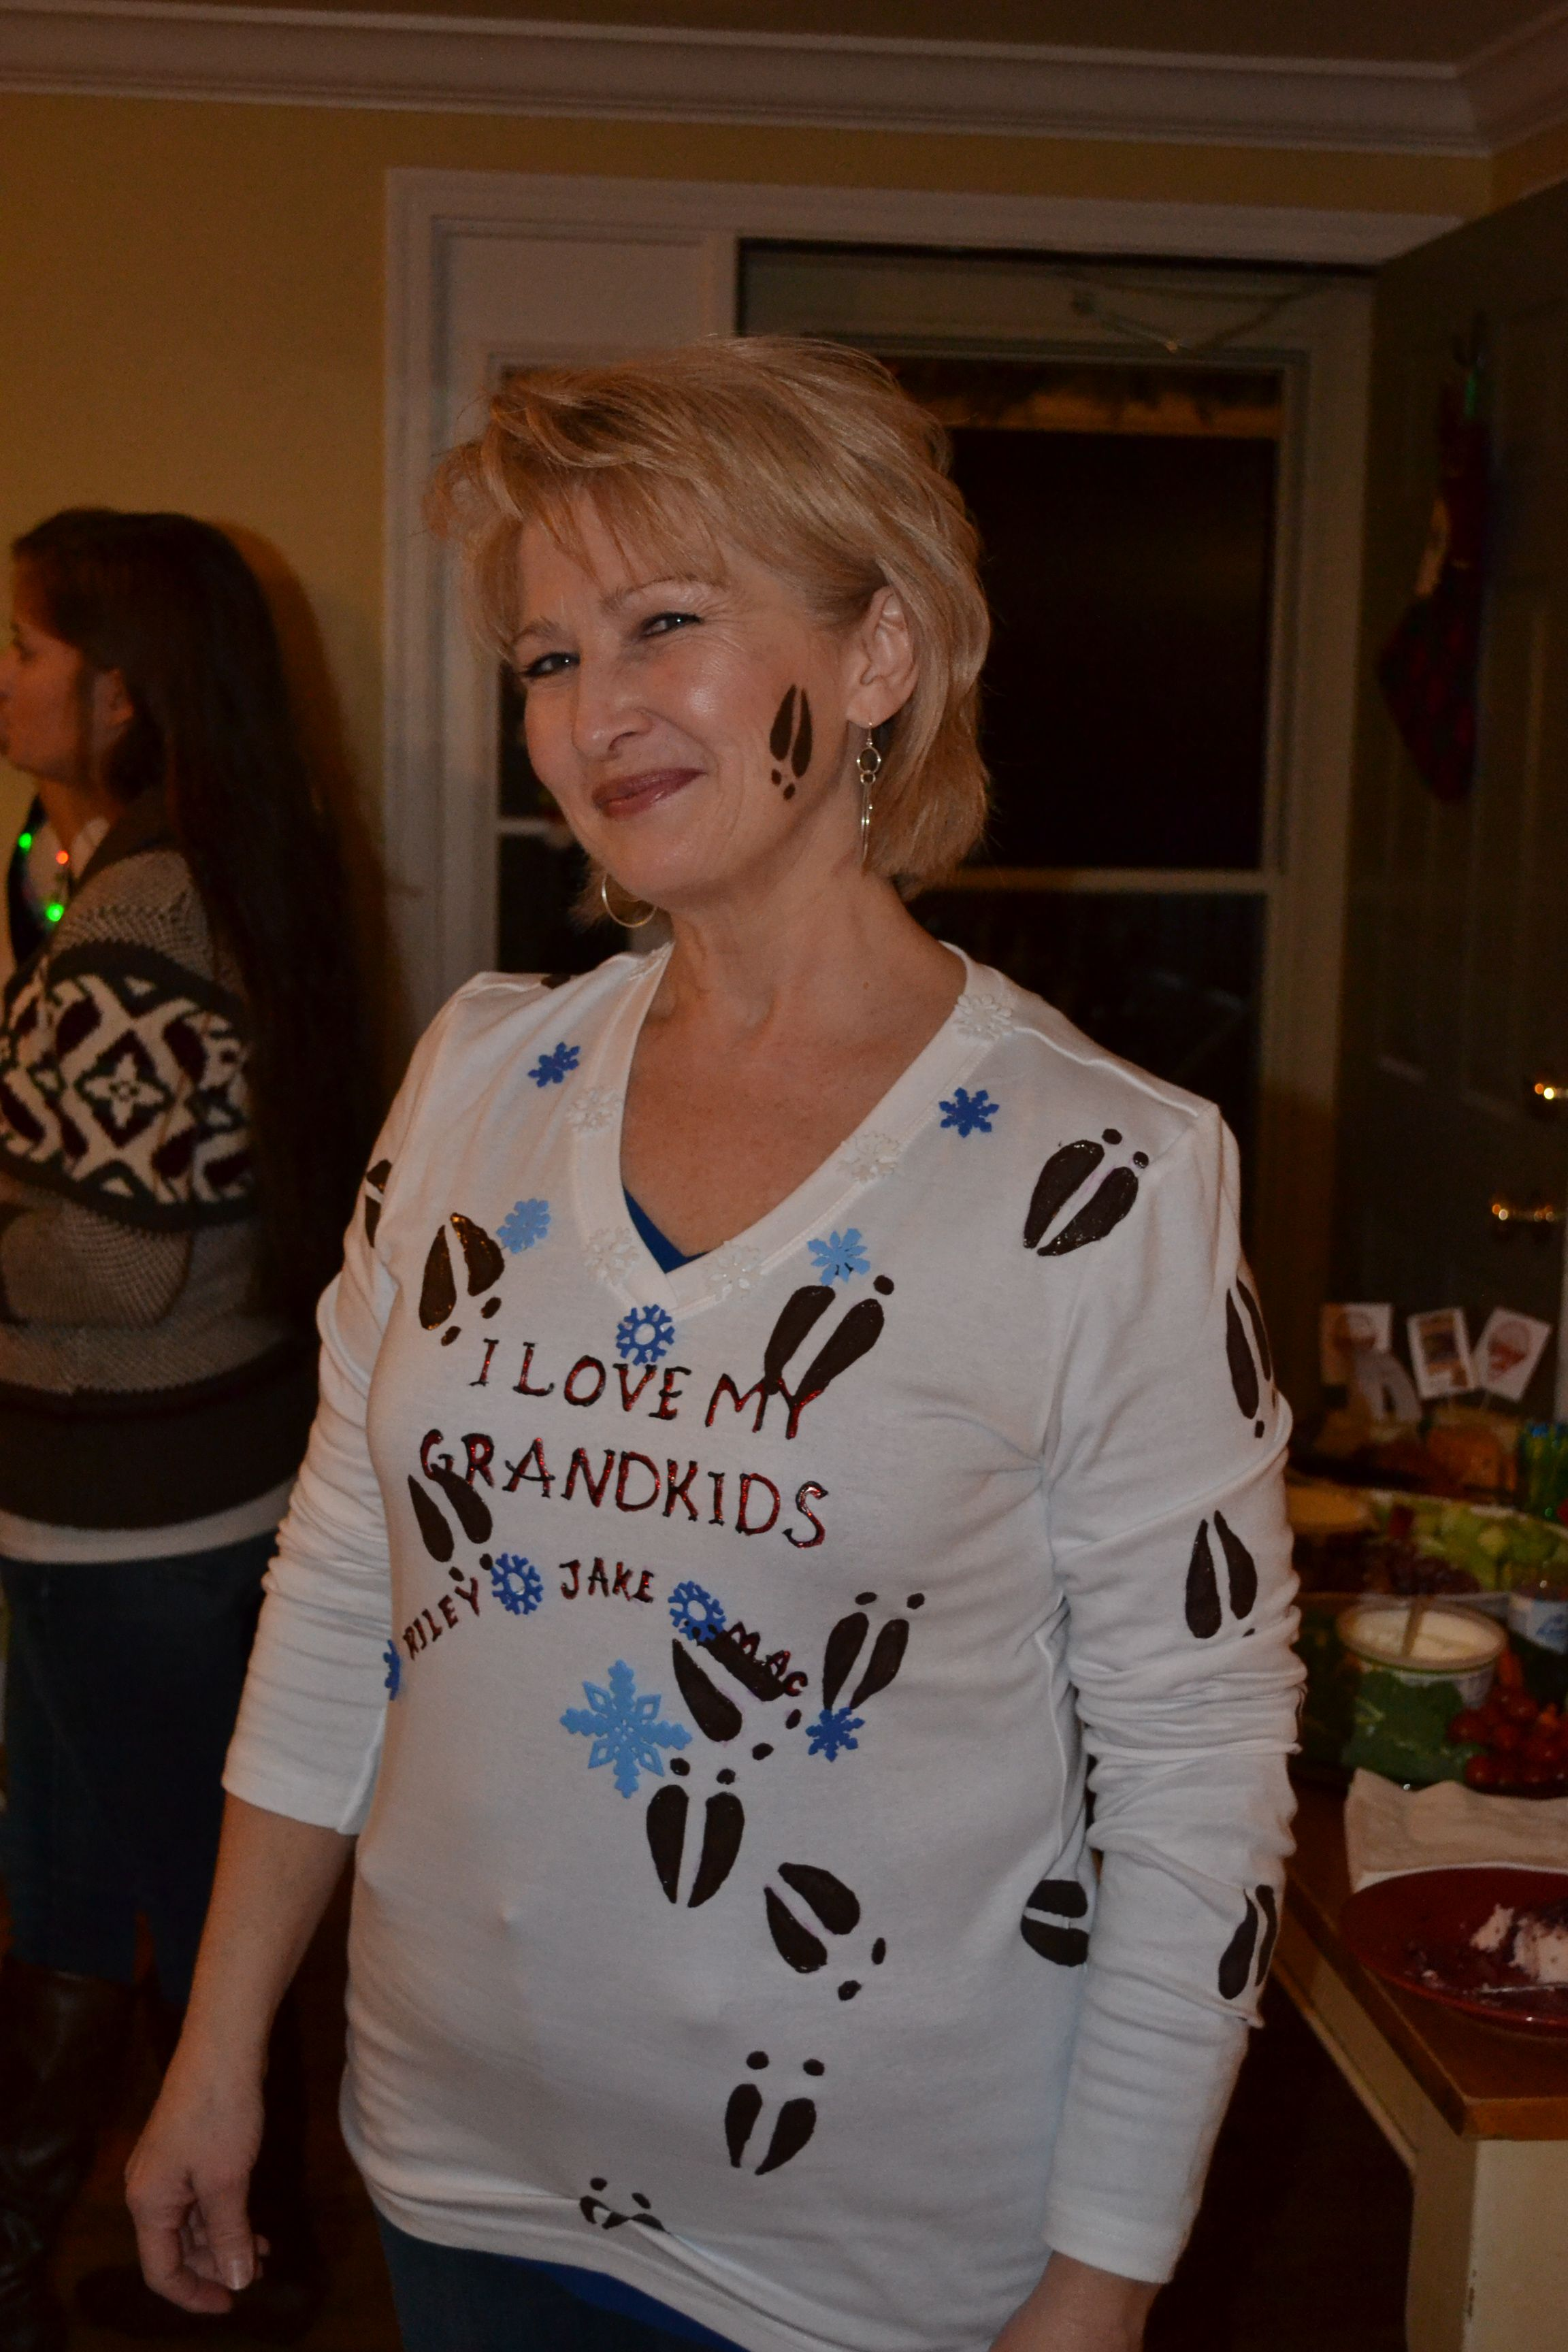 Grandma got run over by a reindeer Tacky Sweater or Ugly sweater